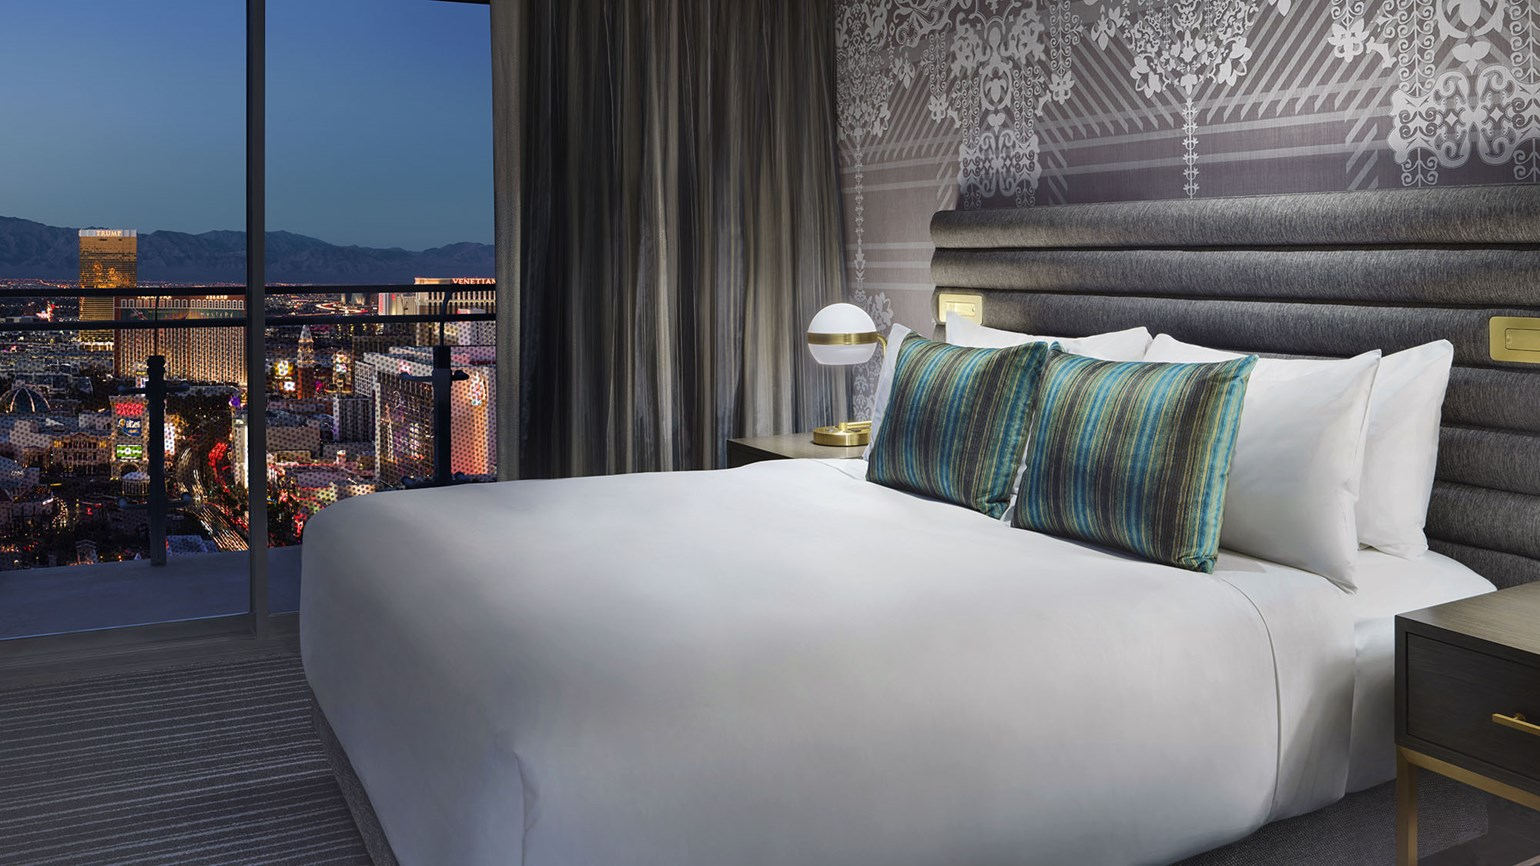 New from the Cosmopolitan: fresh rooms, free parking, a private jet